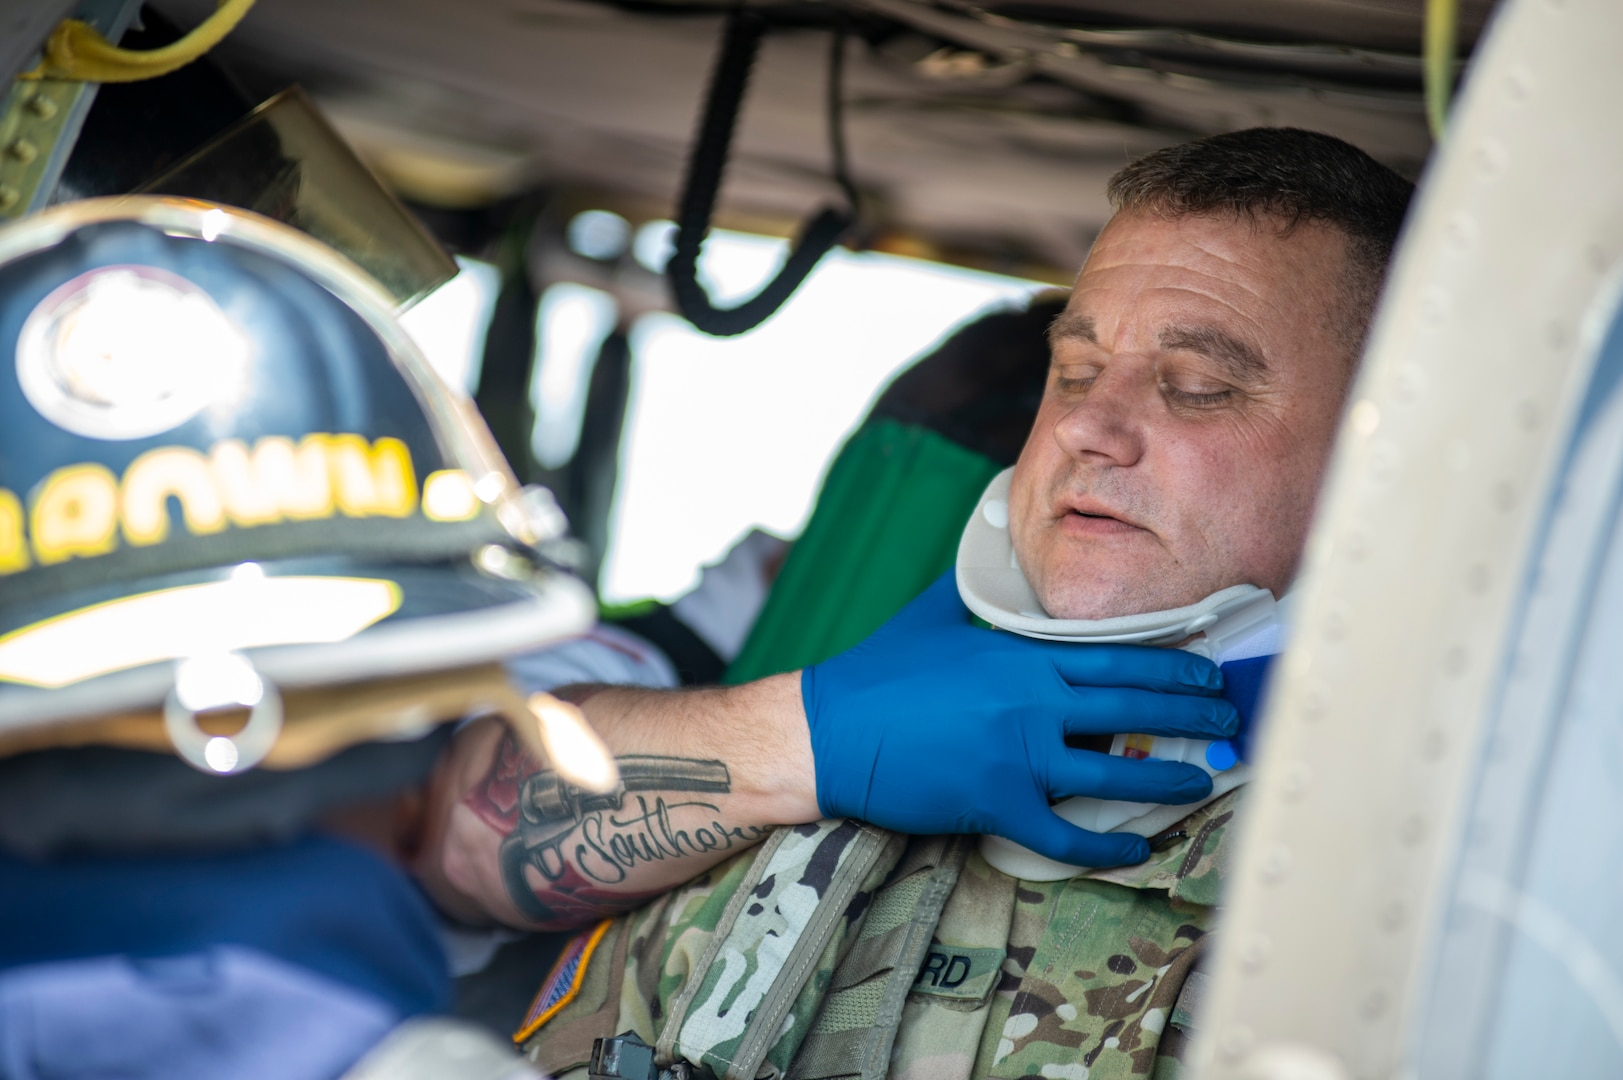 Fire fighters with the Tulsa, Oklahoma Fire Department and EMSA personnel place a neck brace on a mock casualty played by an Oklahoma Army National Guard Citizen-Soldier inside a simulated helicopter crash during pre-accident training at the Oklahoma Army National Guard's Army Aviation Support Facility 2 in Tulsa, Oklahoma, May 12, 2021. Pre-accident training prepares Army aviation units to respond to accidents ranging from slip and falls to mass casualty events. (Oklahoma National Guard photo by Anthony Jones)